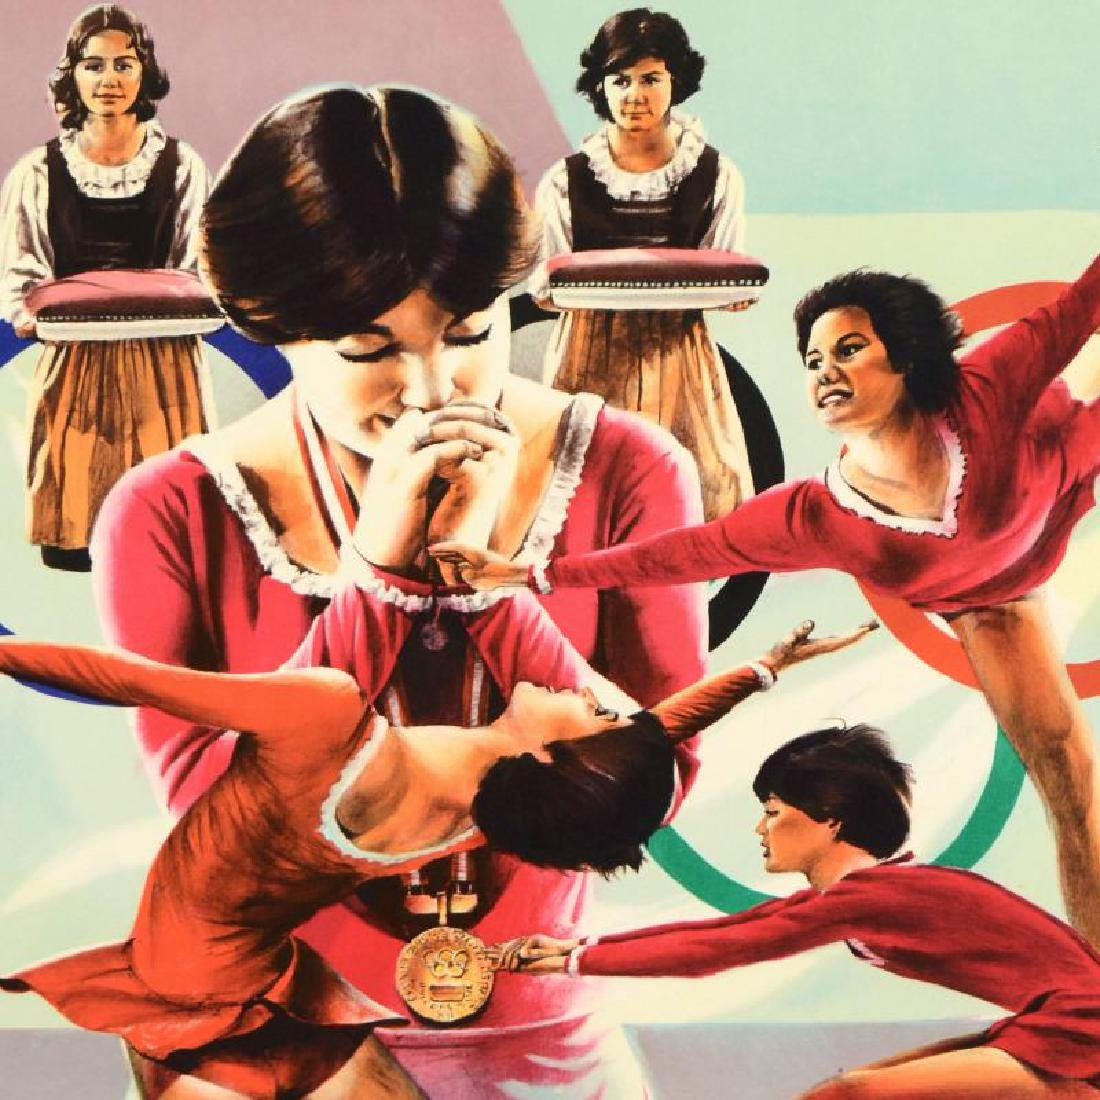 Dorothy Hamill by Nelson, William - 2